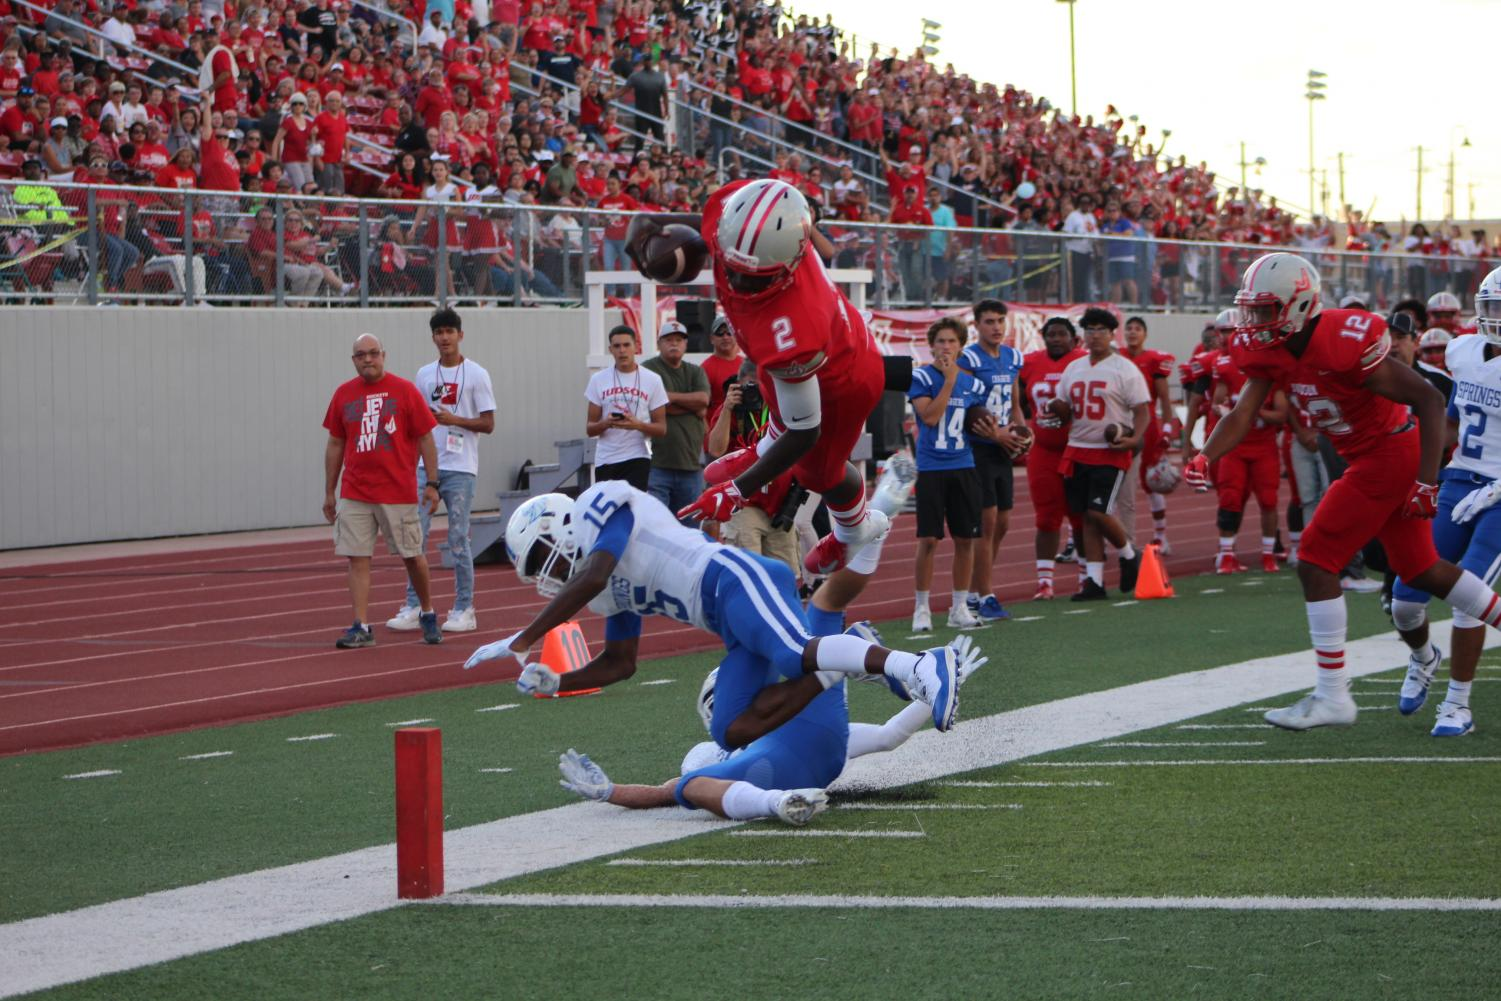 Mike Chandler dives into the end zone to score during the first quarter. The Rockets ended up winning the game, 46-28.